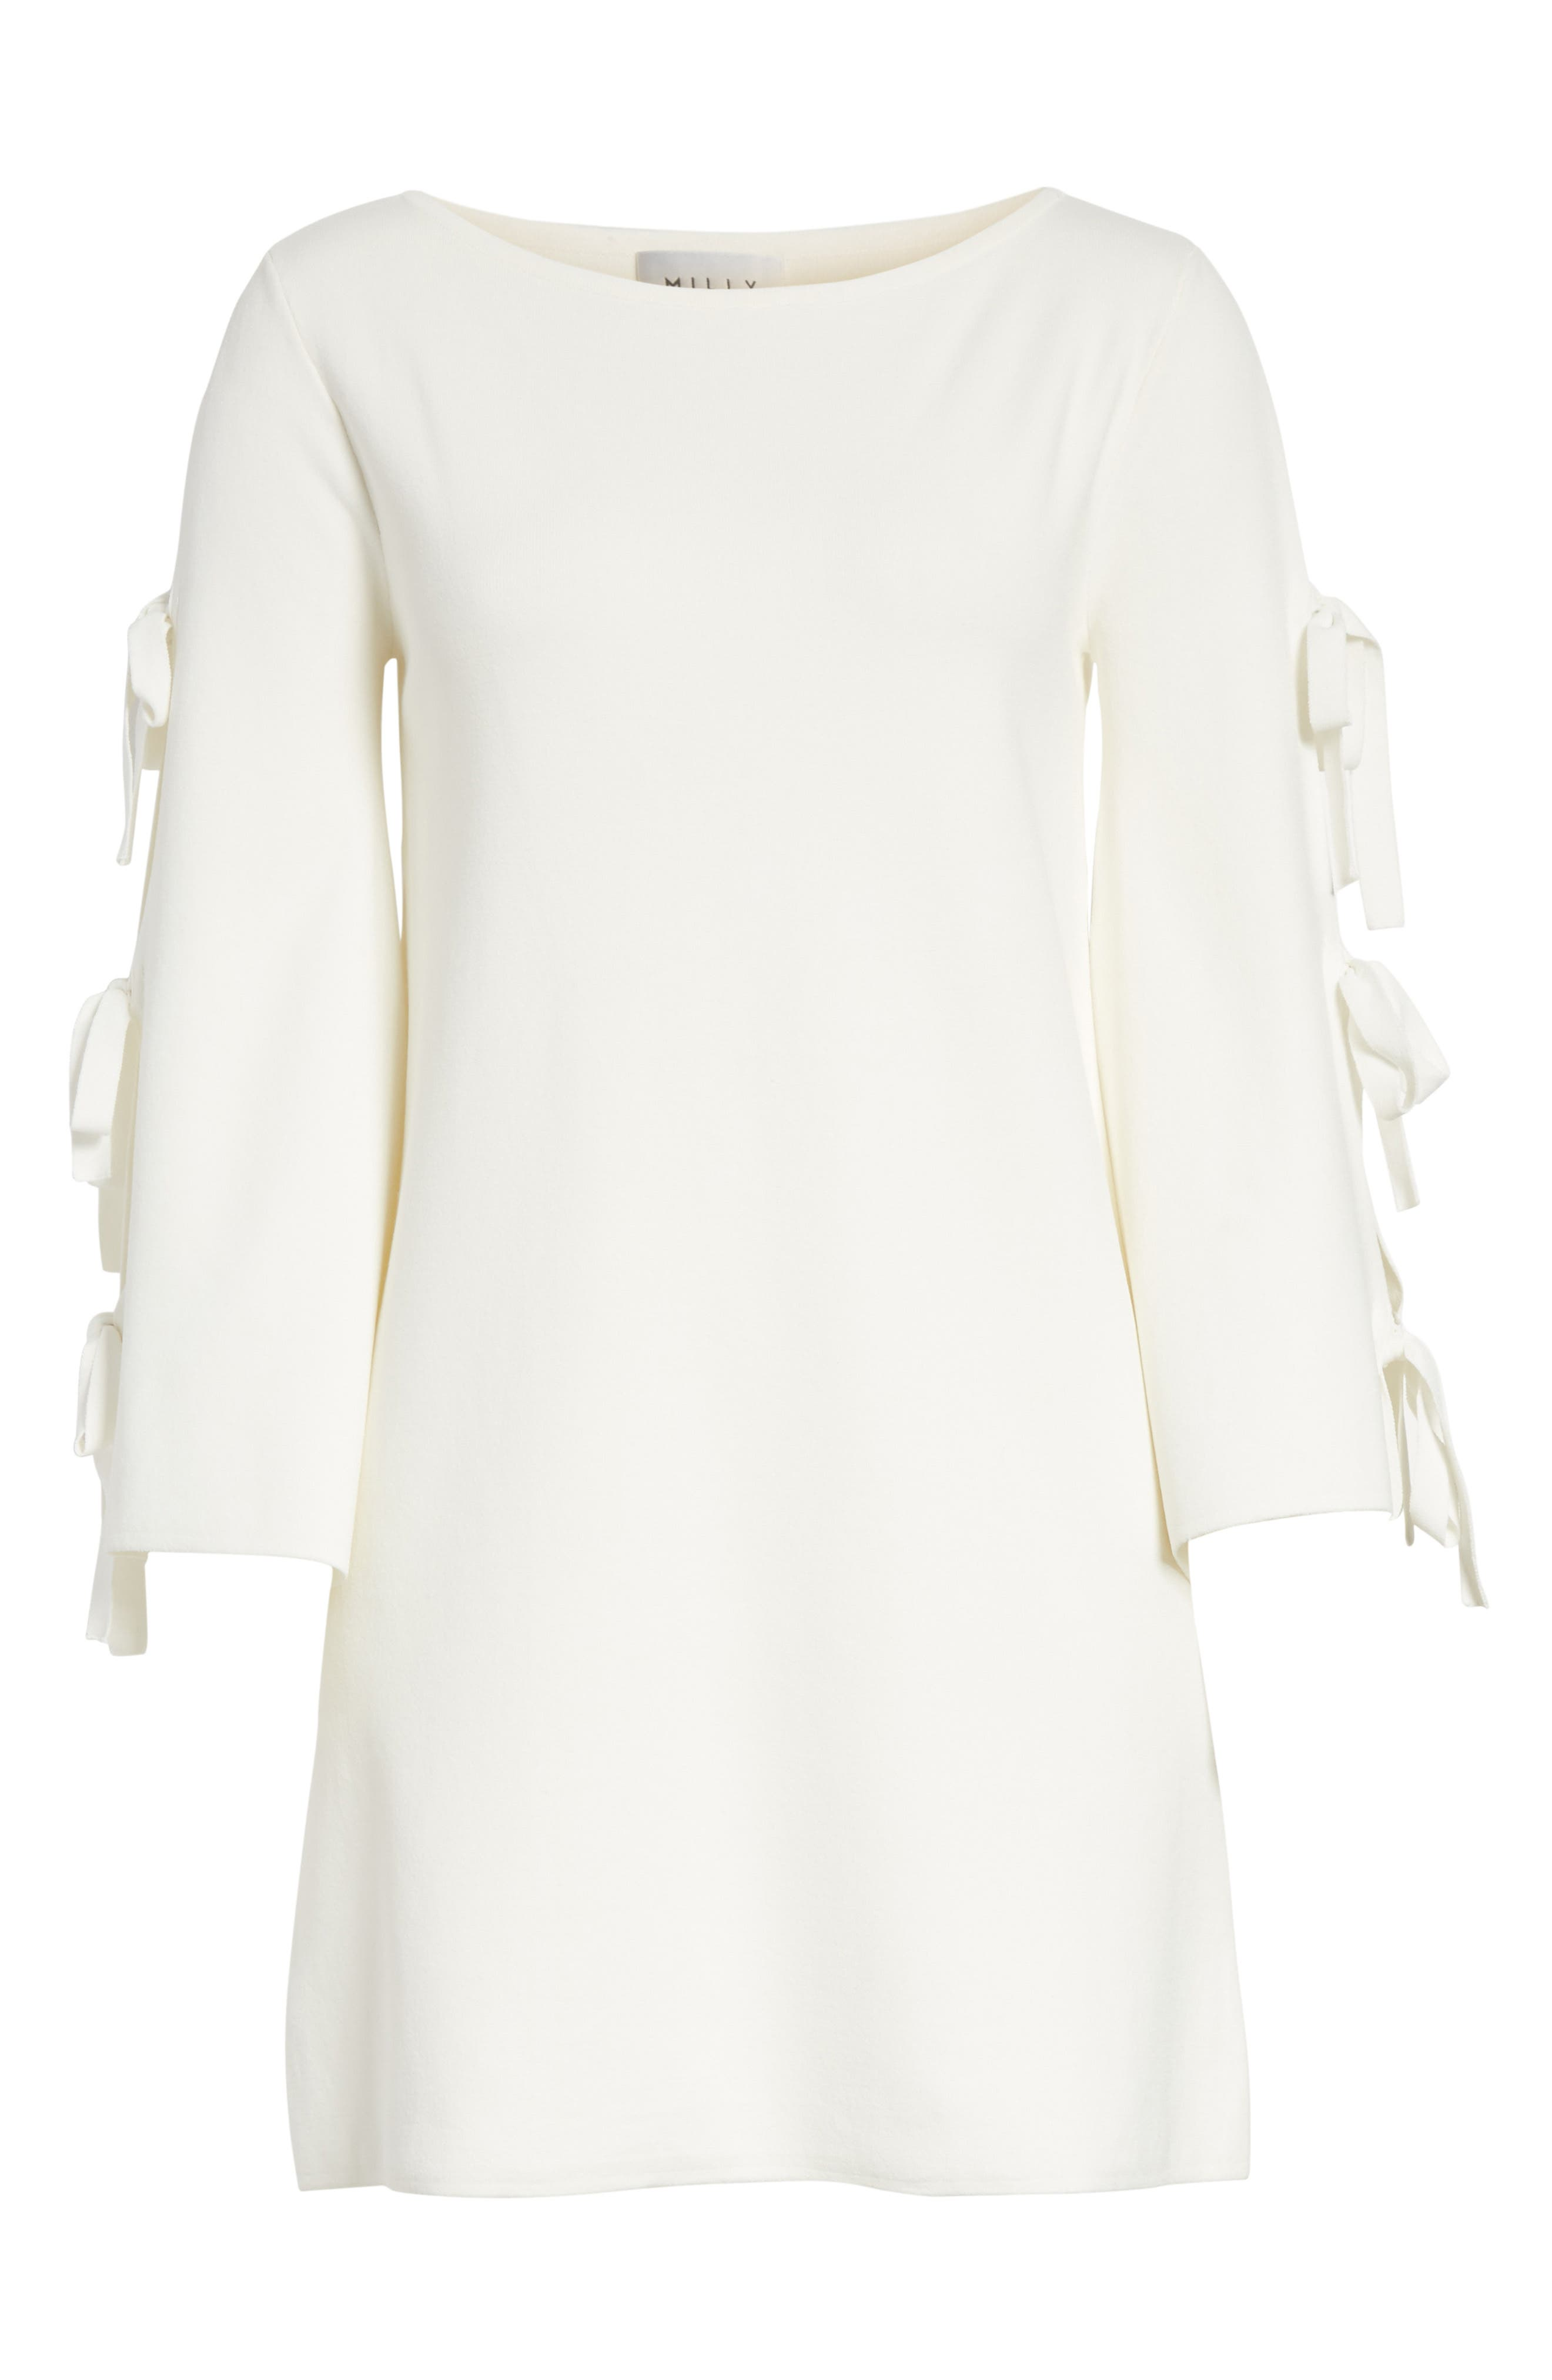 Tied Bell Sleeve Shift Dress,                             Alternate thumbnail 6, color,                             150